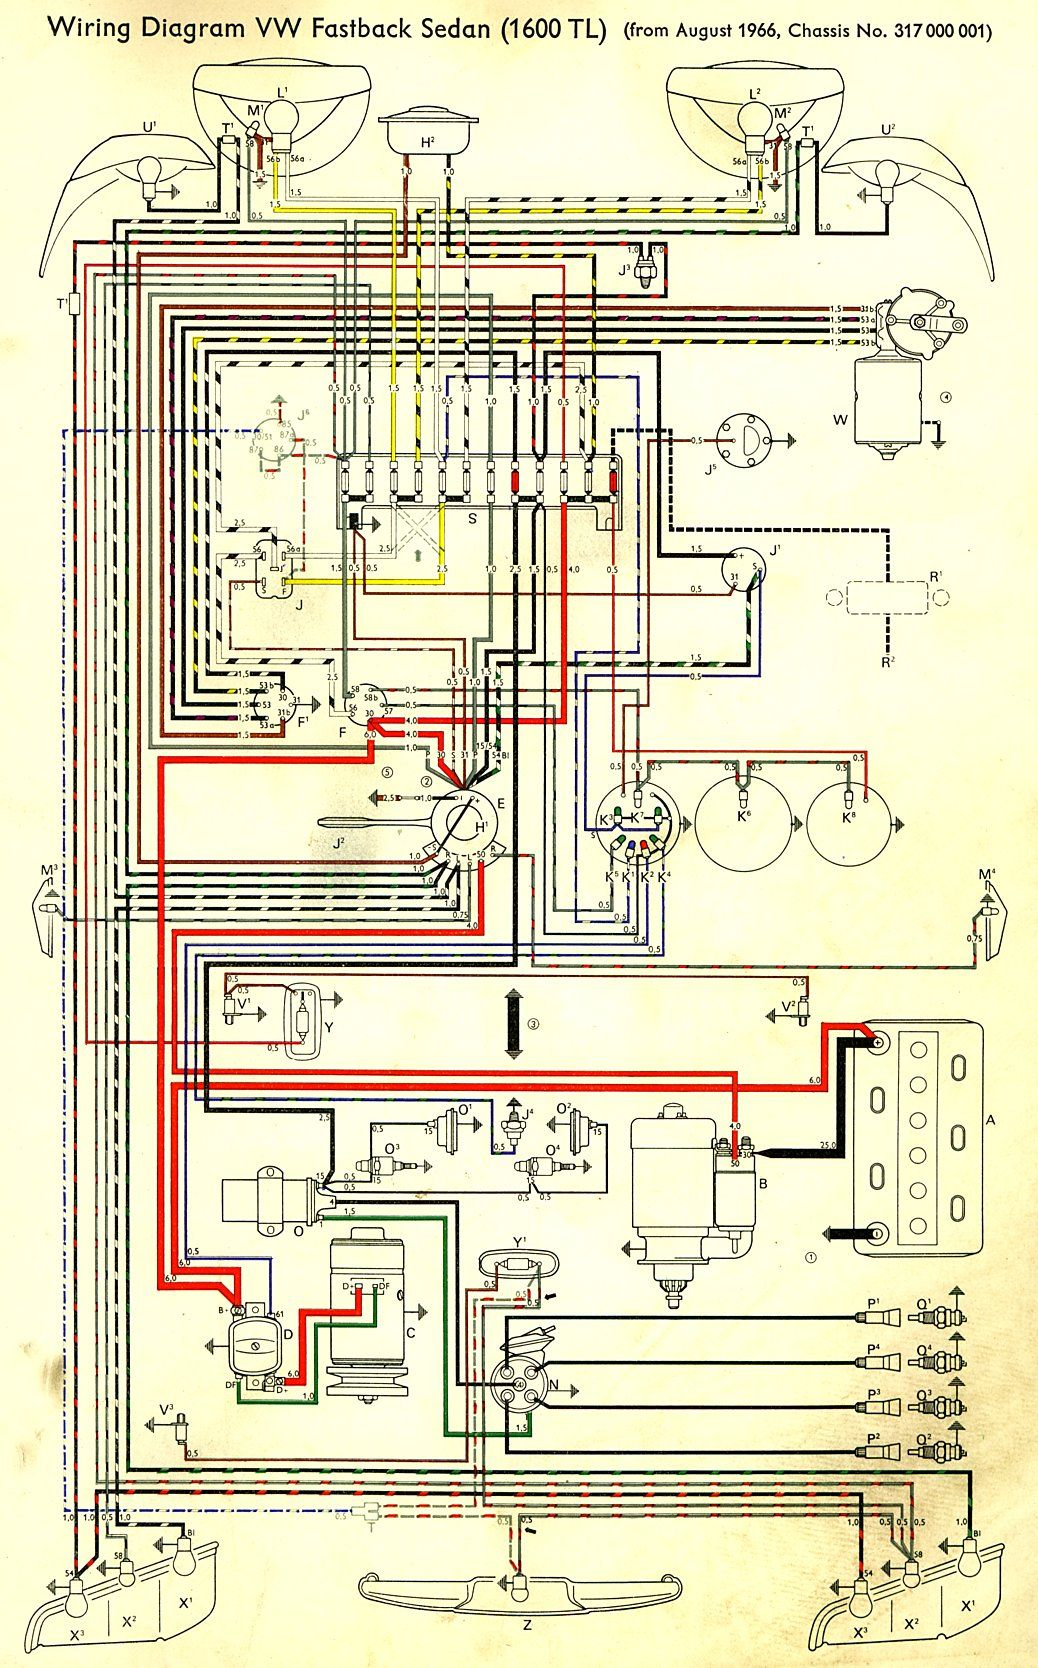 medium resolution of wiring diagram type 928 model 84 page 1 wiring 97 front engine electronic ingnition lh injection cl concealed headlightlampassemrly